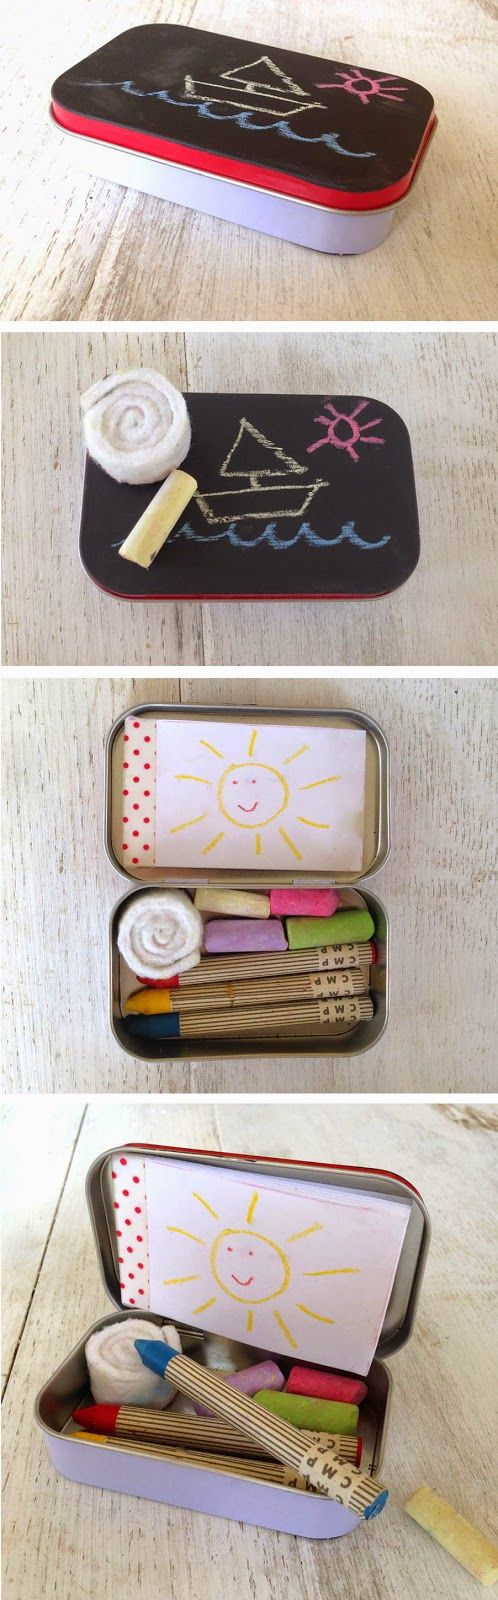 DIY: Recycled mint tin